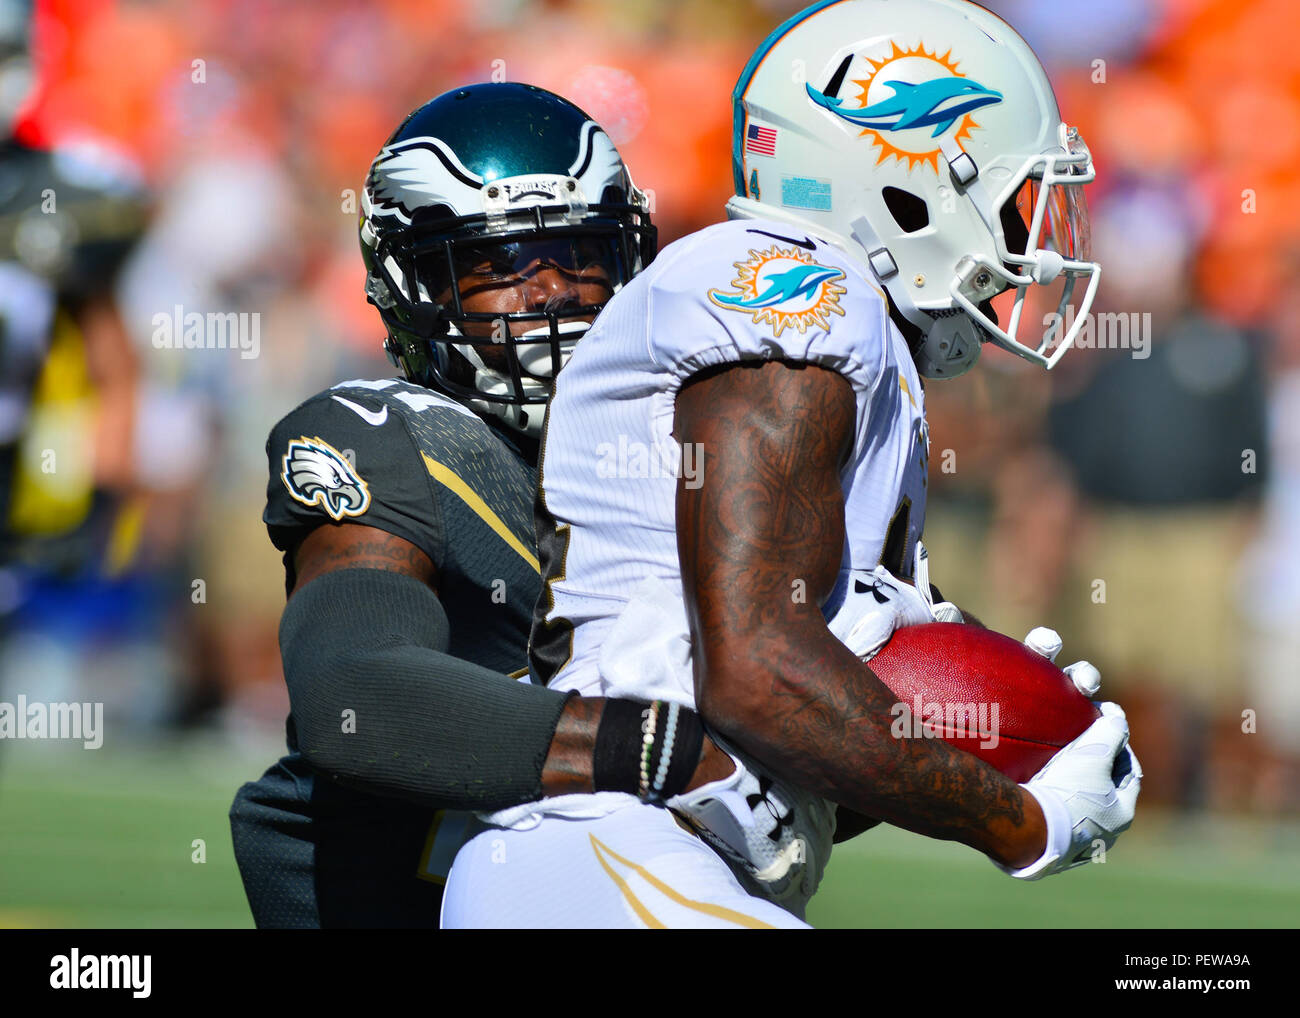 3a4482759 Jarvis Landry Stock Photos   Jarvis Landry Stock Images - Alamy